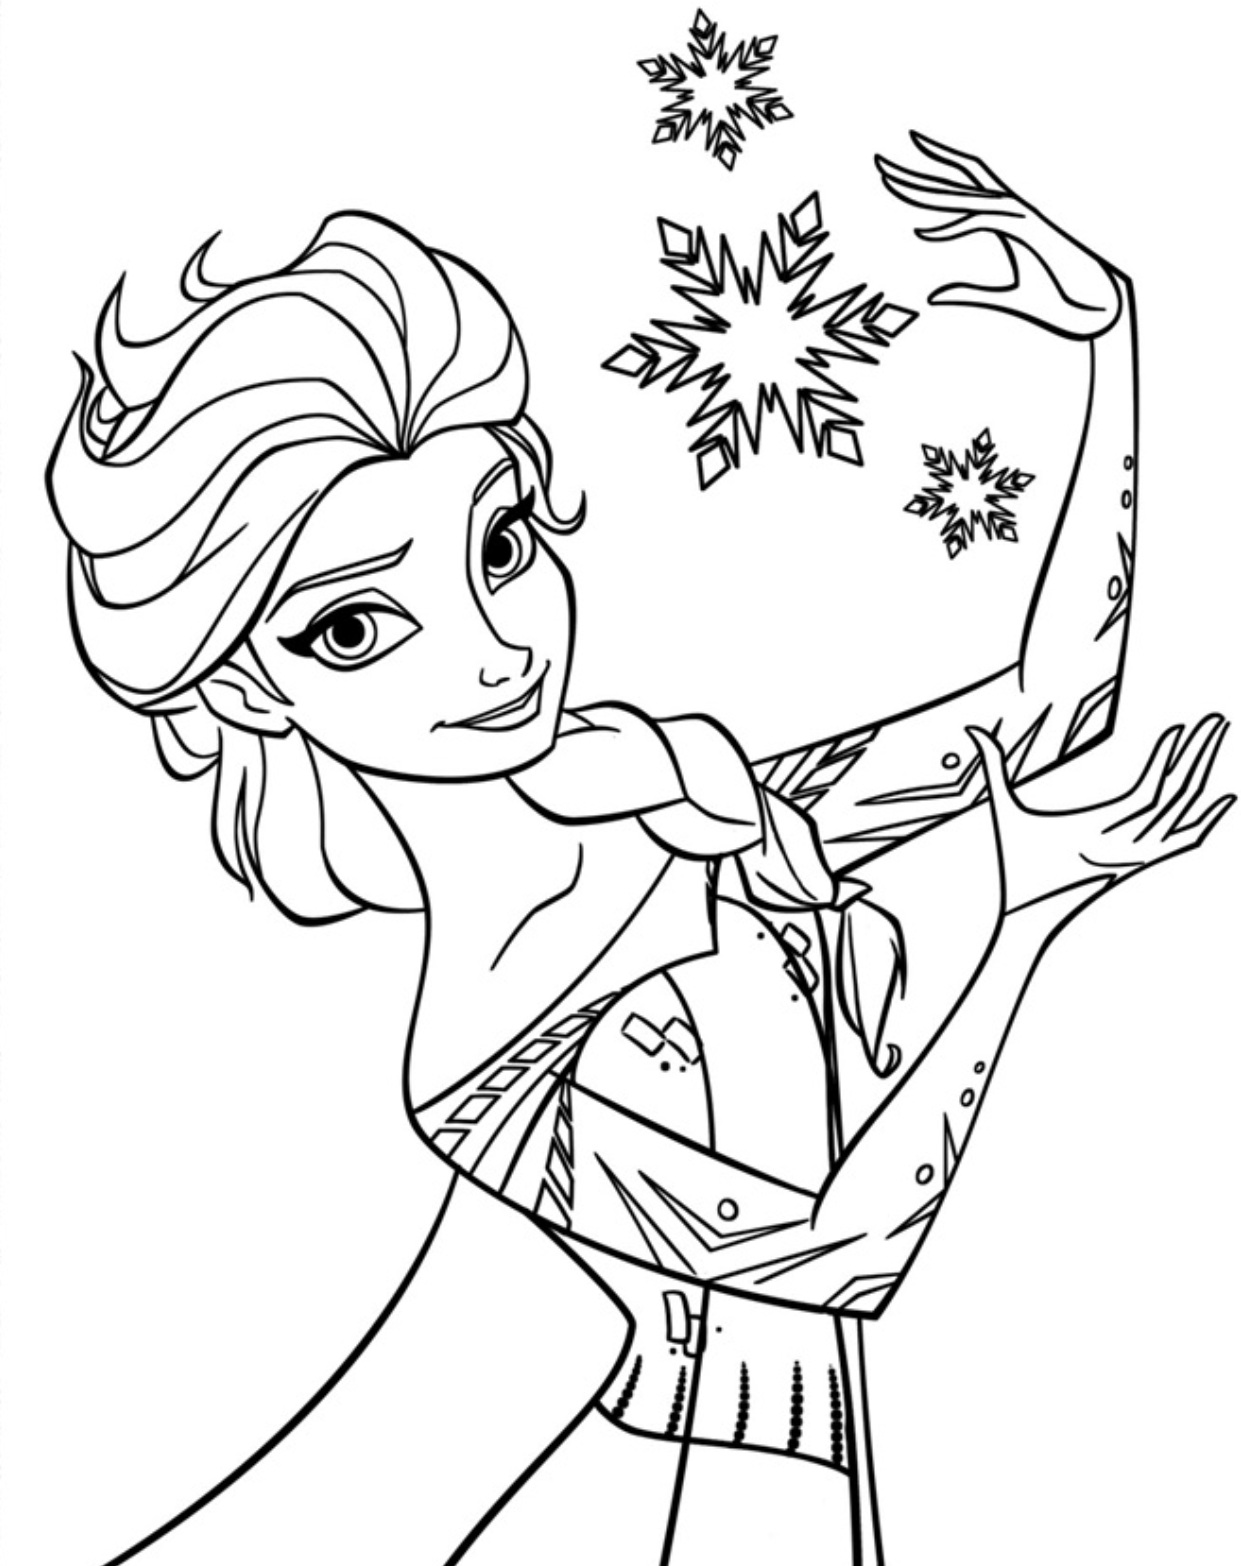 coloring page elsa free printable elsa coloring pages for kids best elsa page coloring